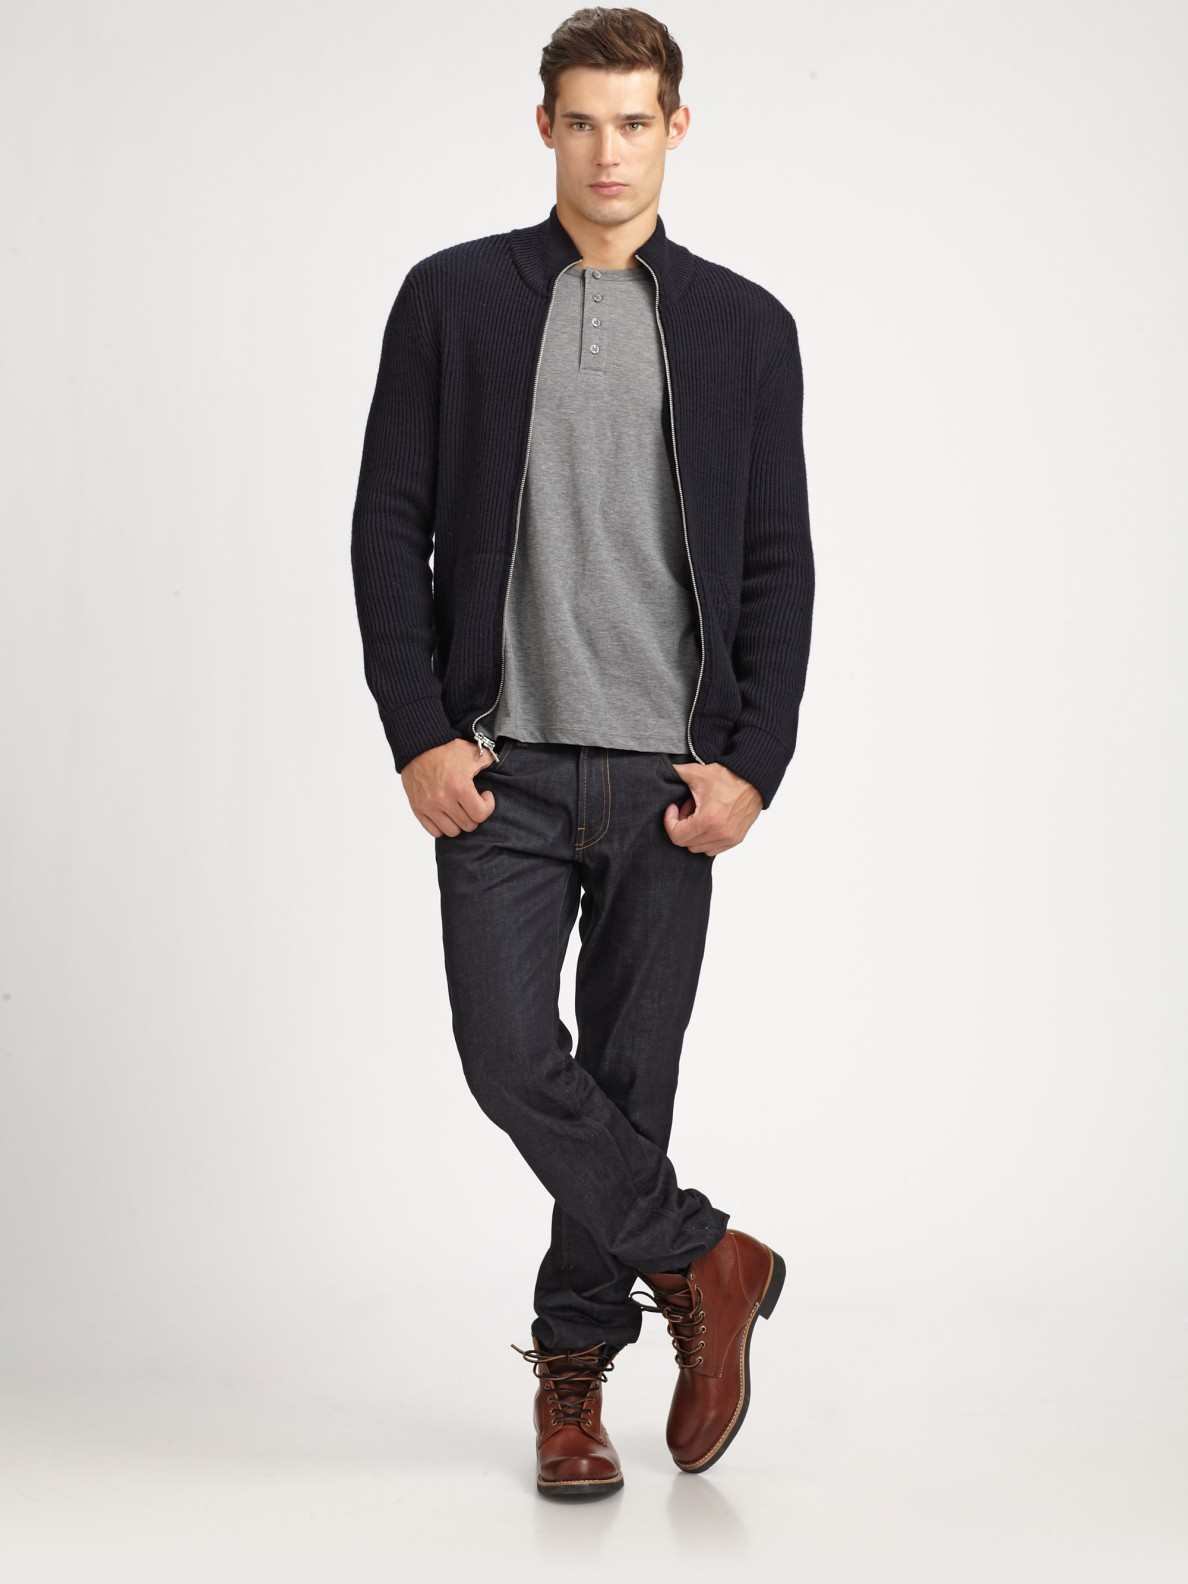 Vince Wool Zip-up Sweater in Black for Men | Lyst